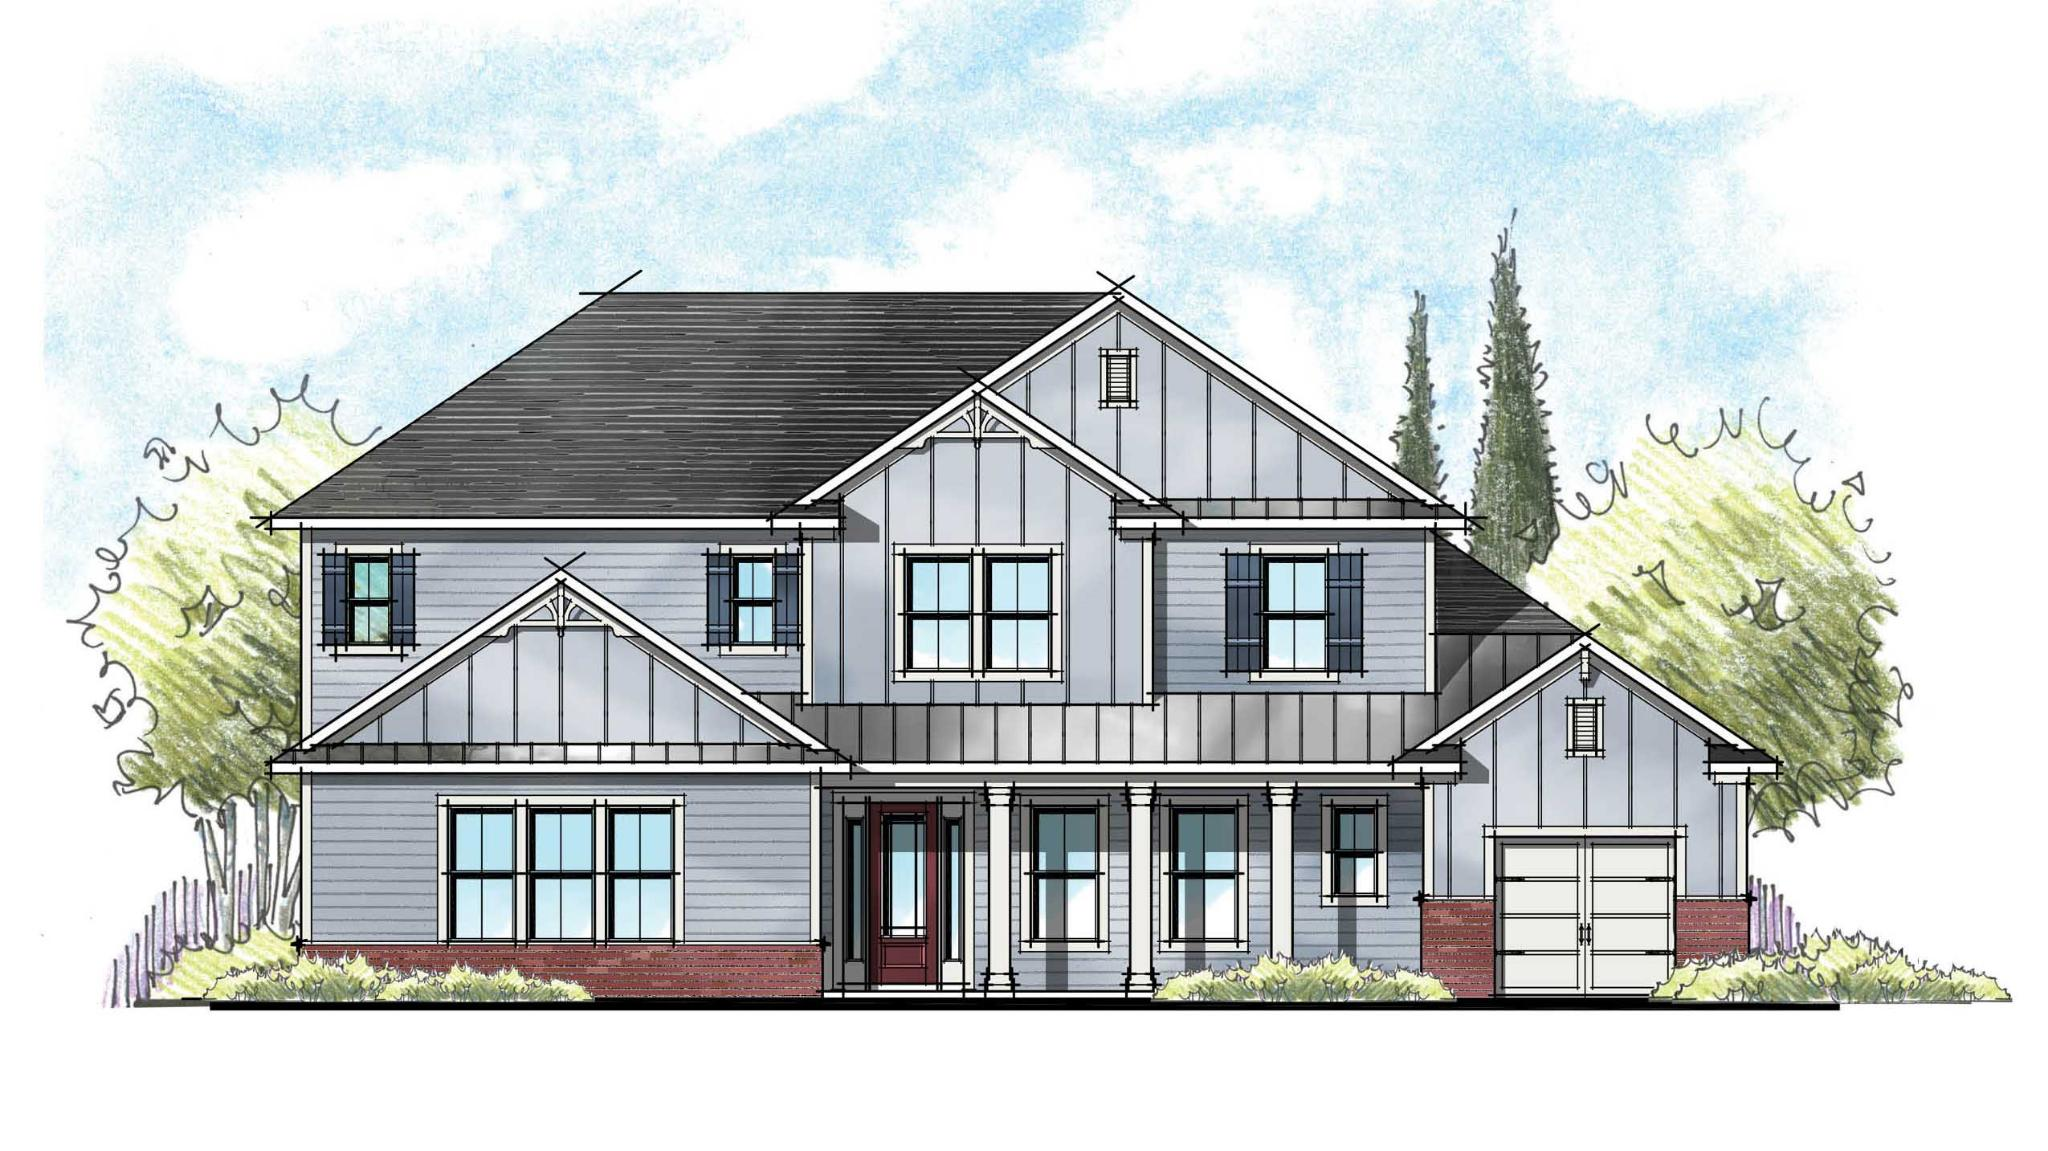 The Charlotte Farmhouse Elevation 5